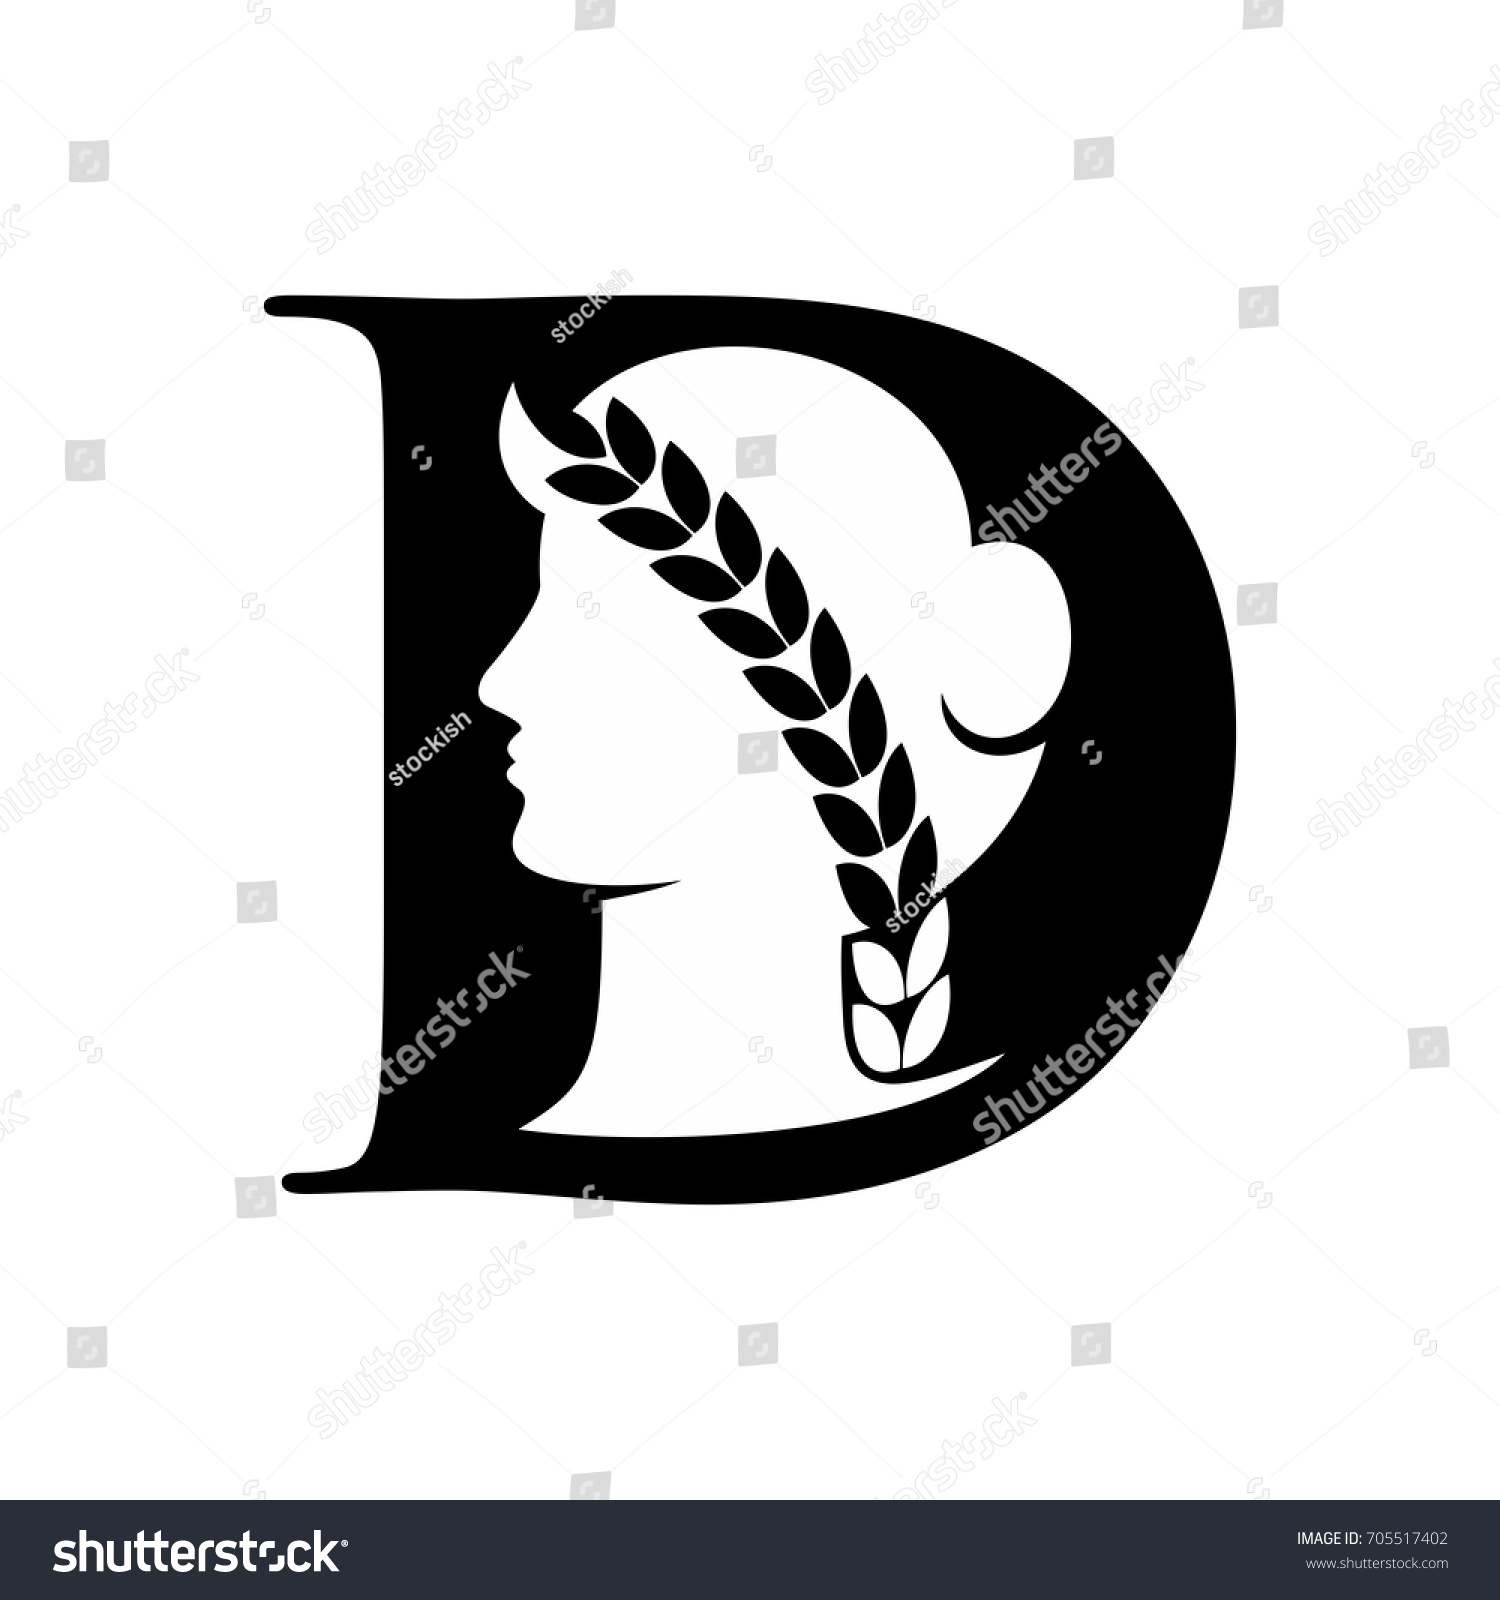 Demeter vector logo silhouette vector letter stock vector 705517402 demeter vector logo silhouette vector letter d vector logo buycottarizona Image collections